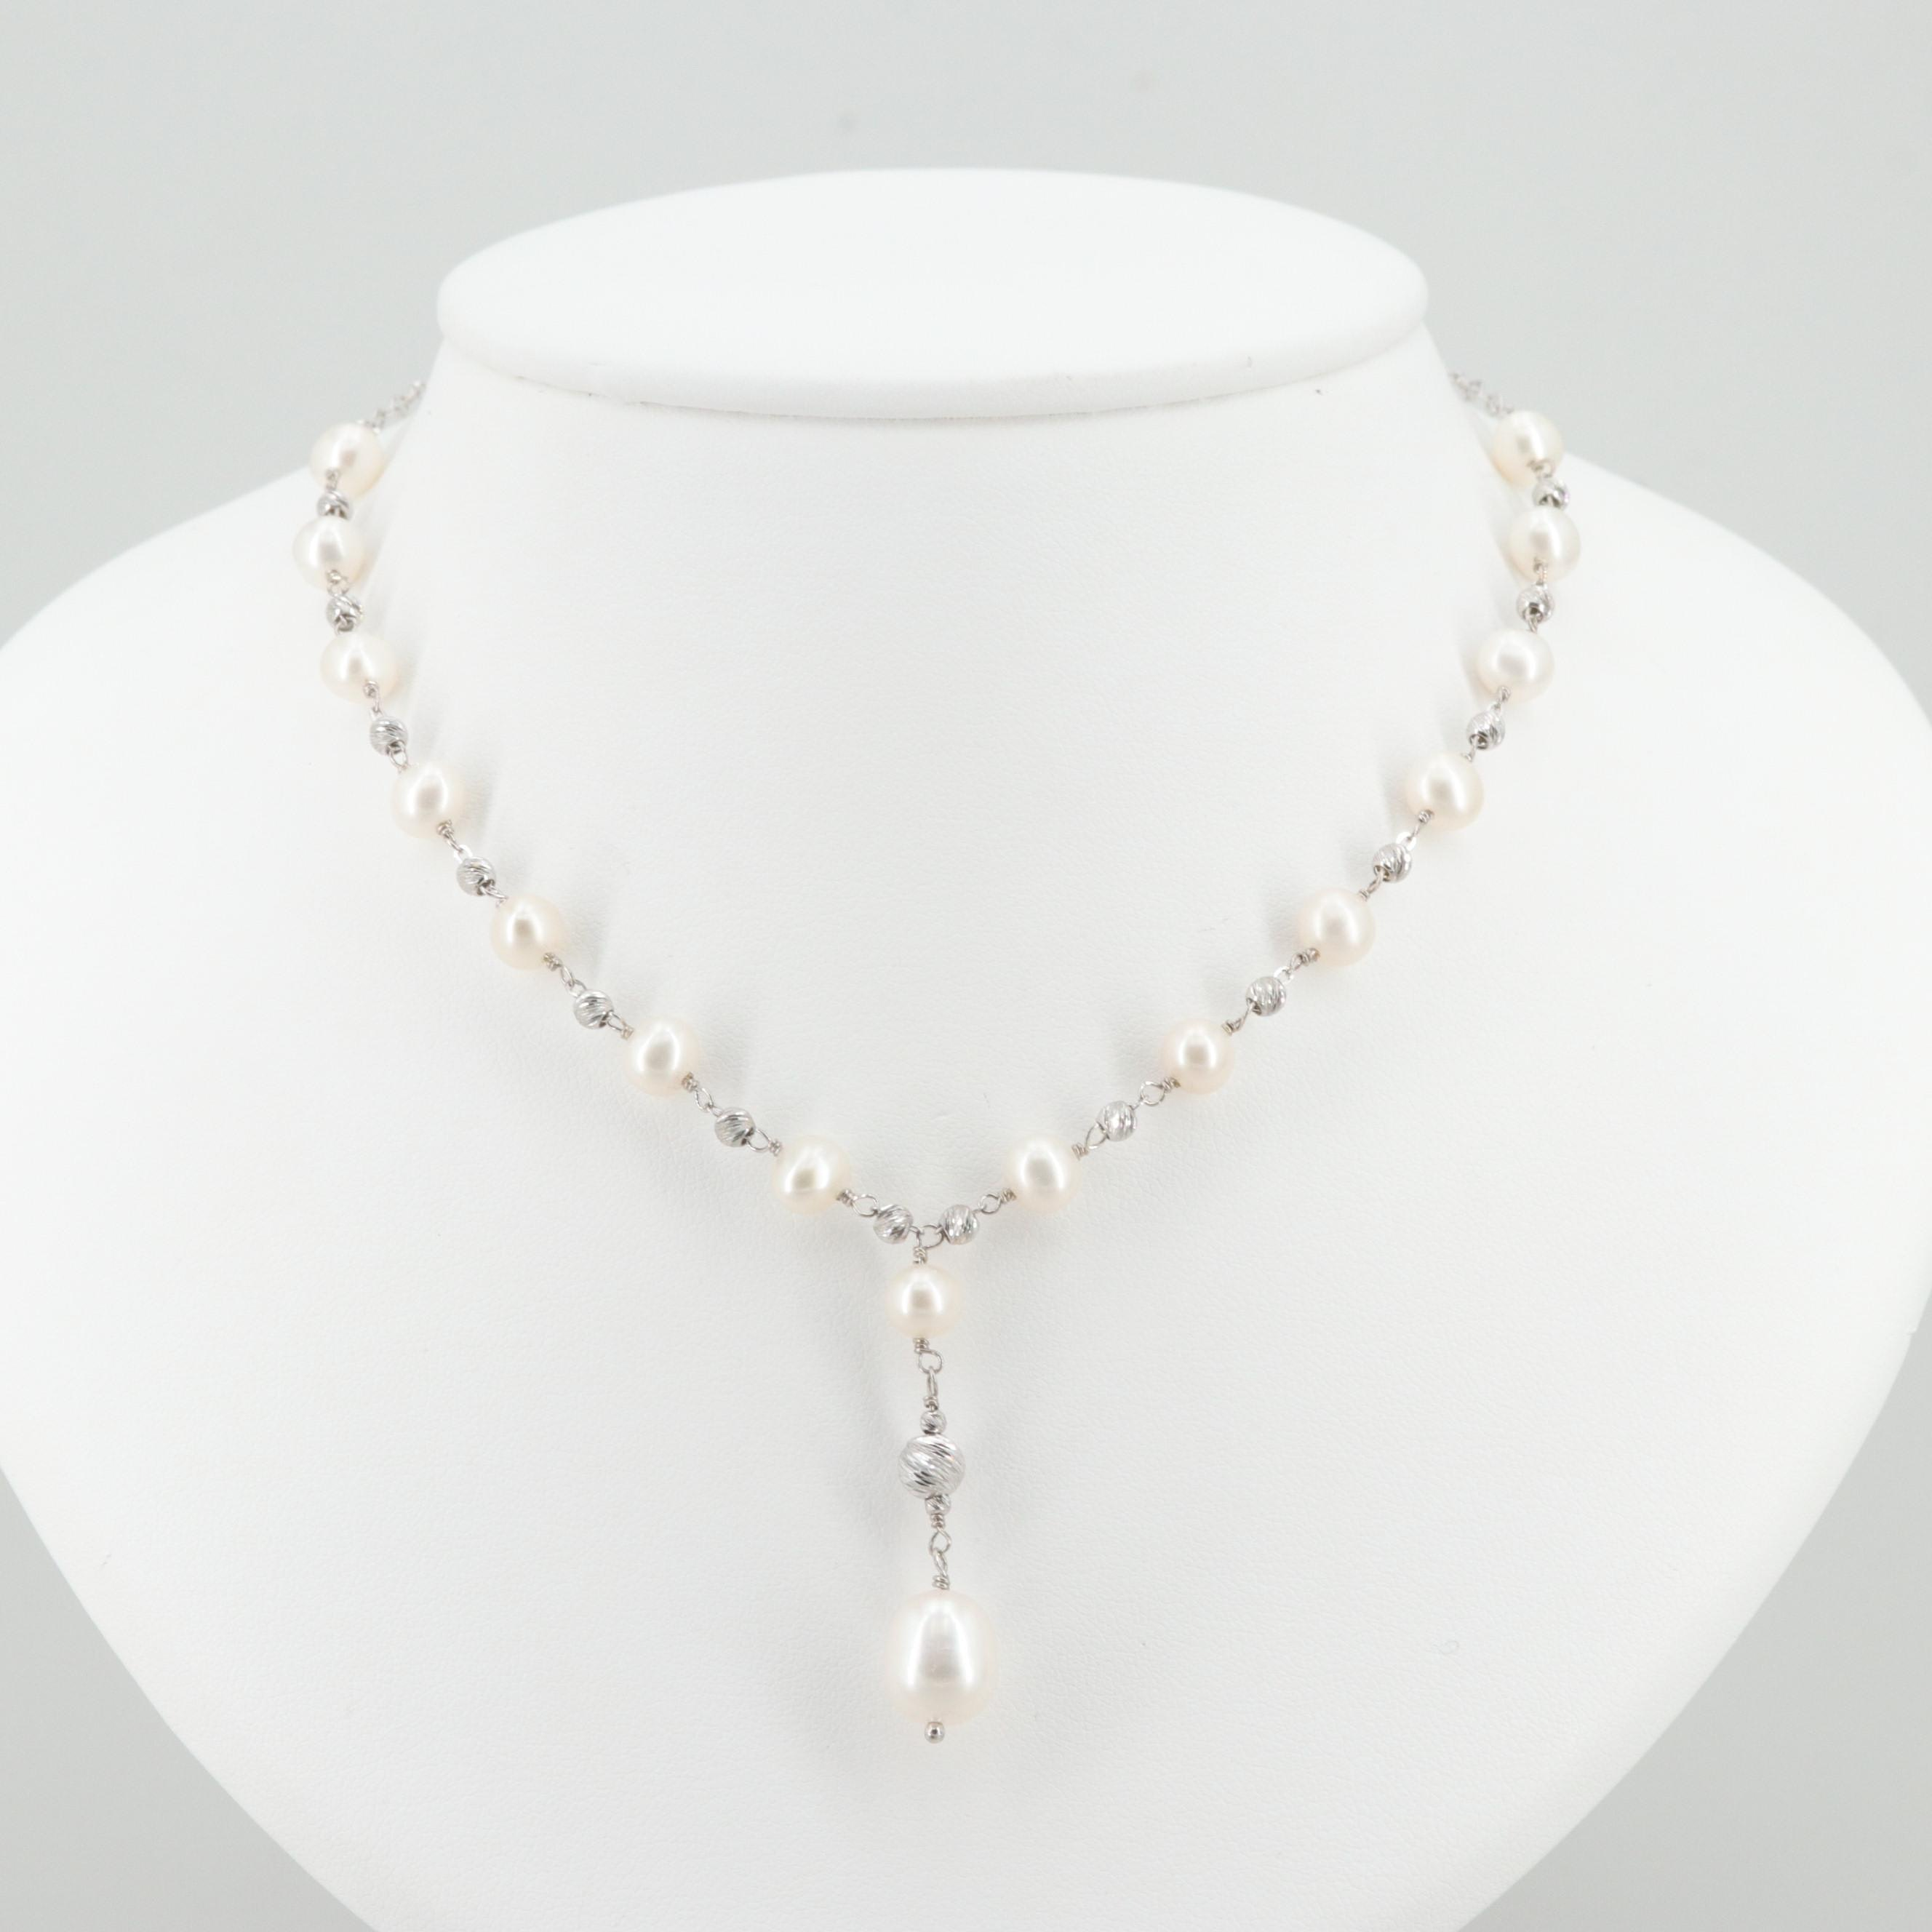 Sterling Silver Necklace and Earrings with Cultured Pearl and Quartz